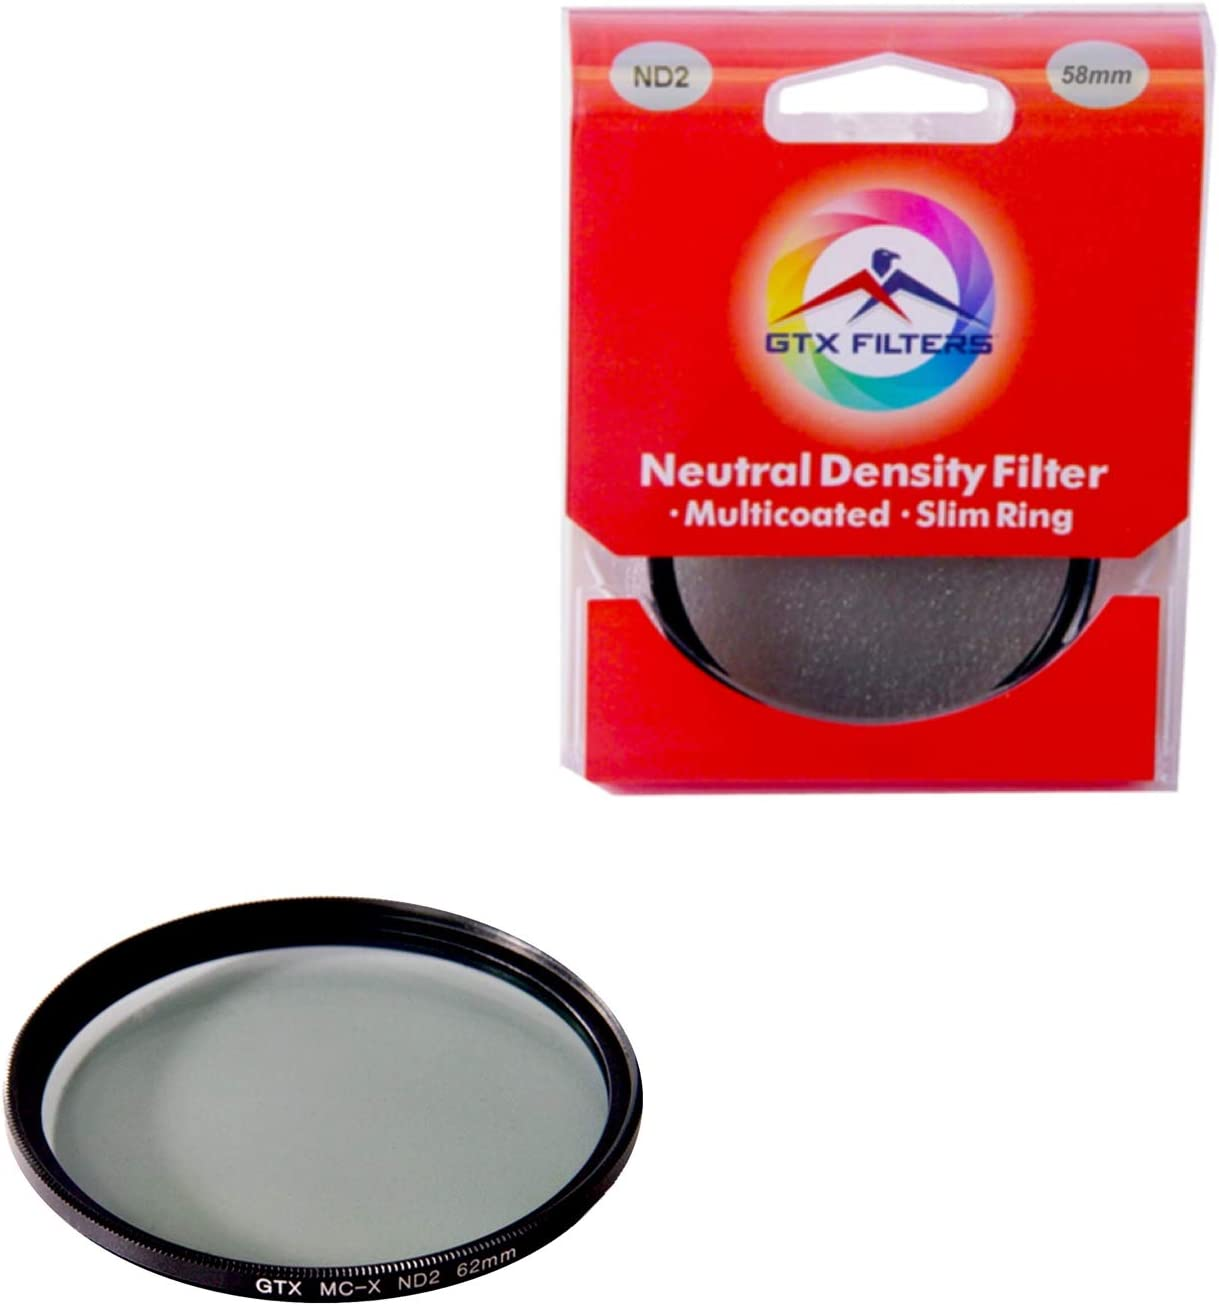 Black GTX FILTERS GF-X//ND277 X Series ND2 77mm Camera Lens Neutral Density Filter